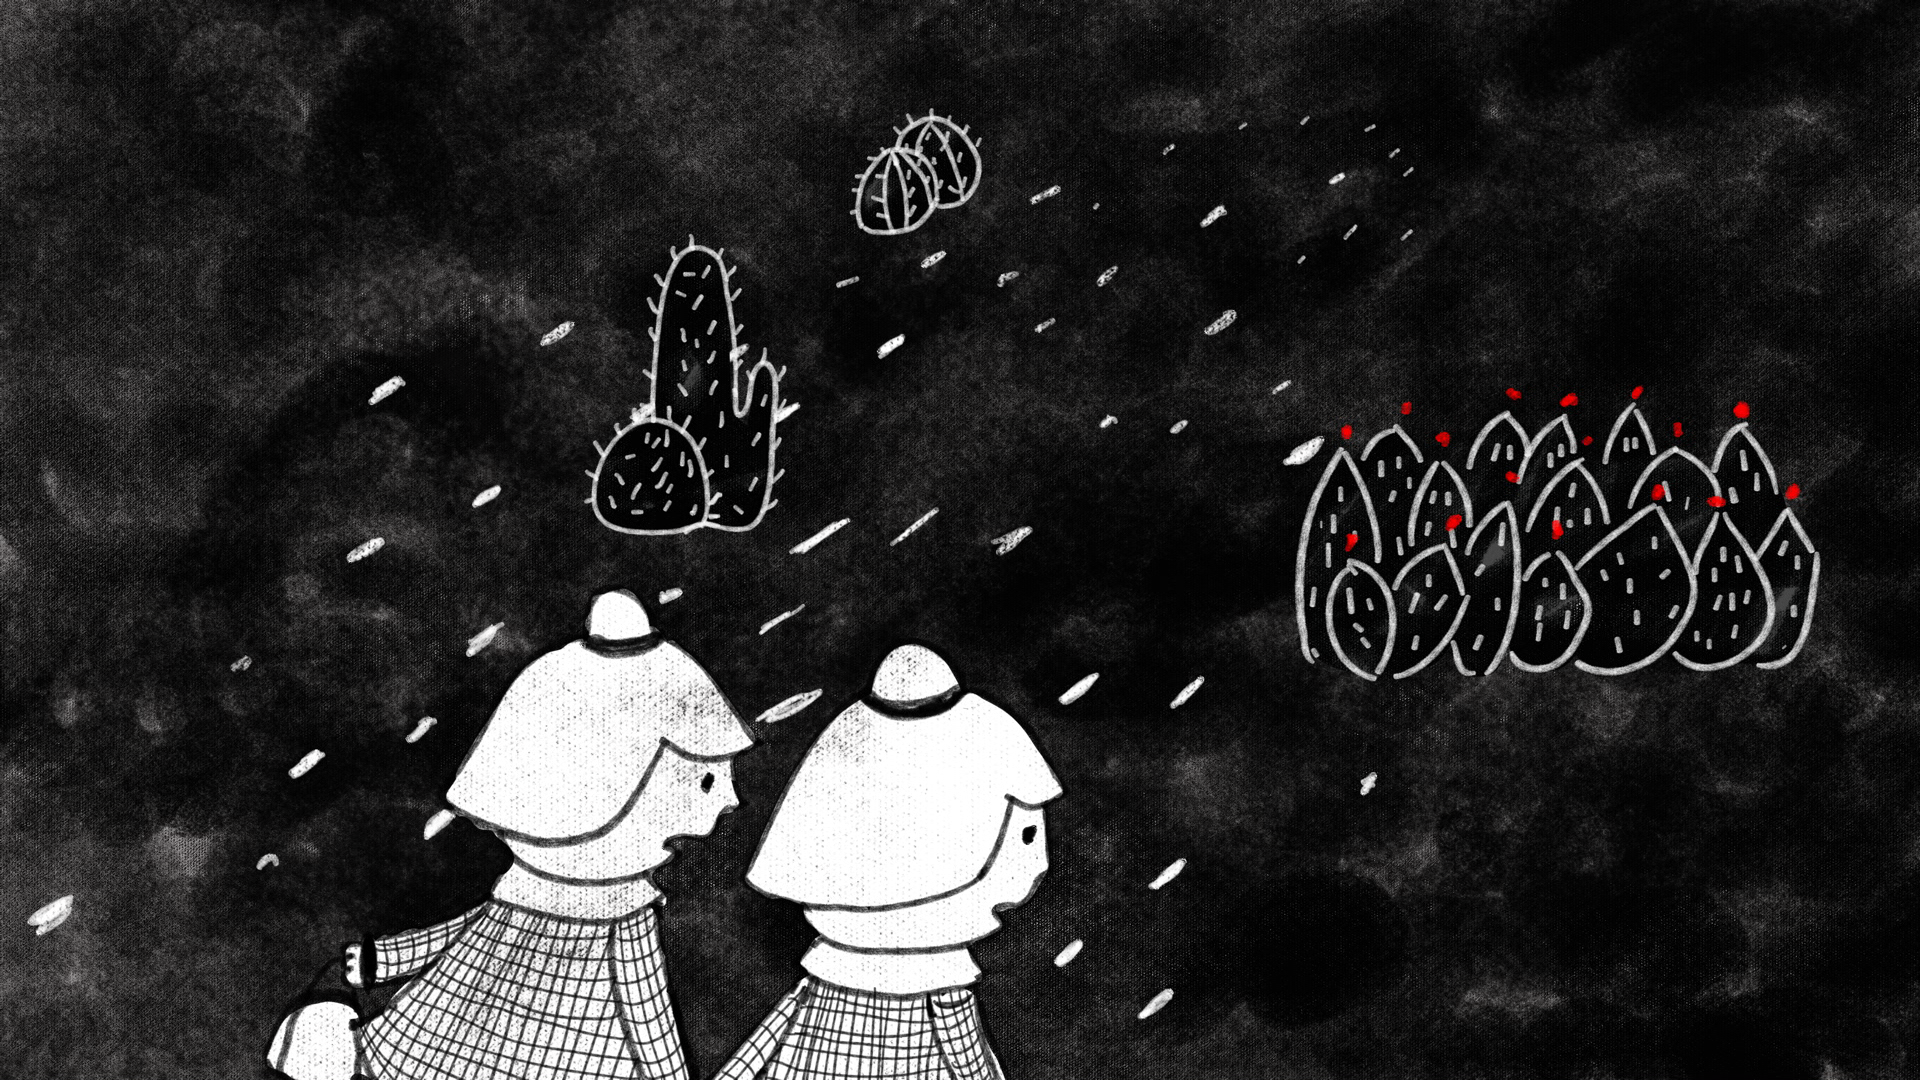 You Should Stream: This Hand-Drawn Animated Short Is a Childlike But Powerful Look at Crossing the Border